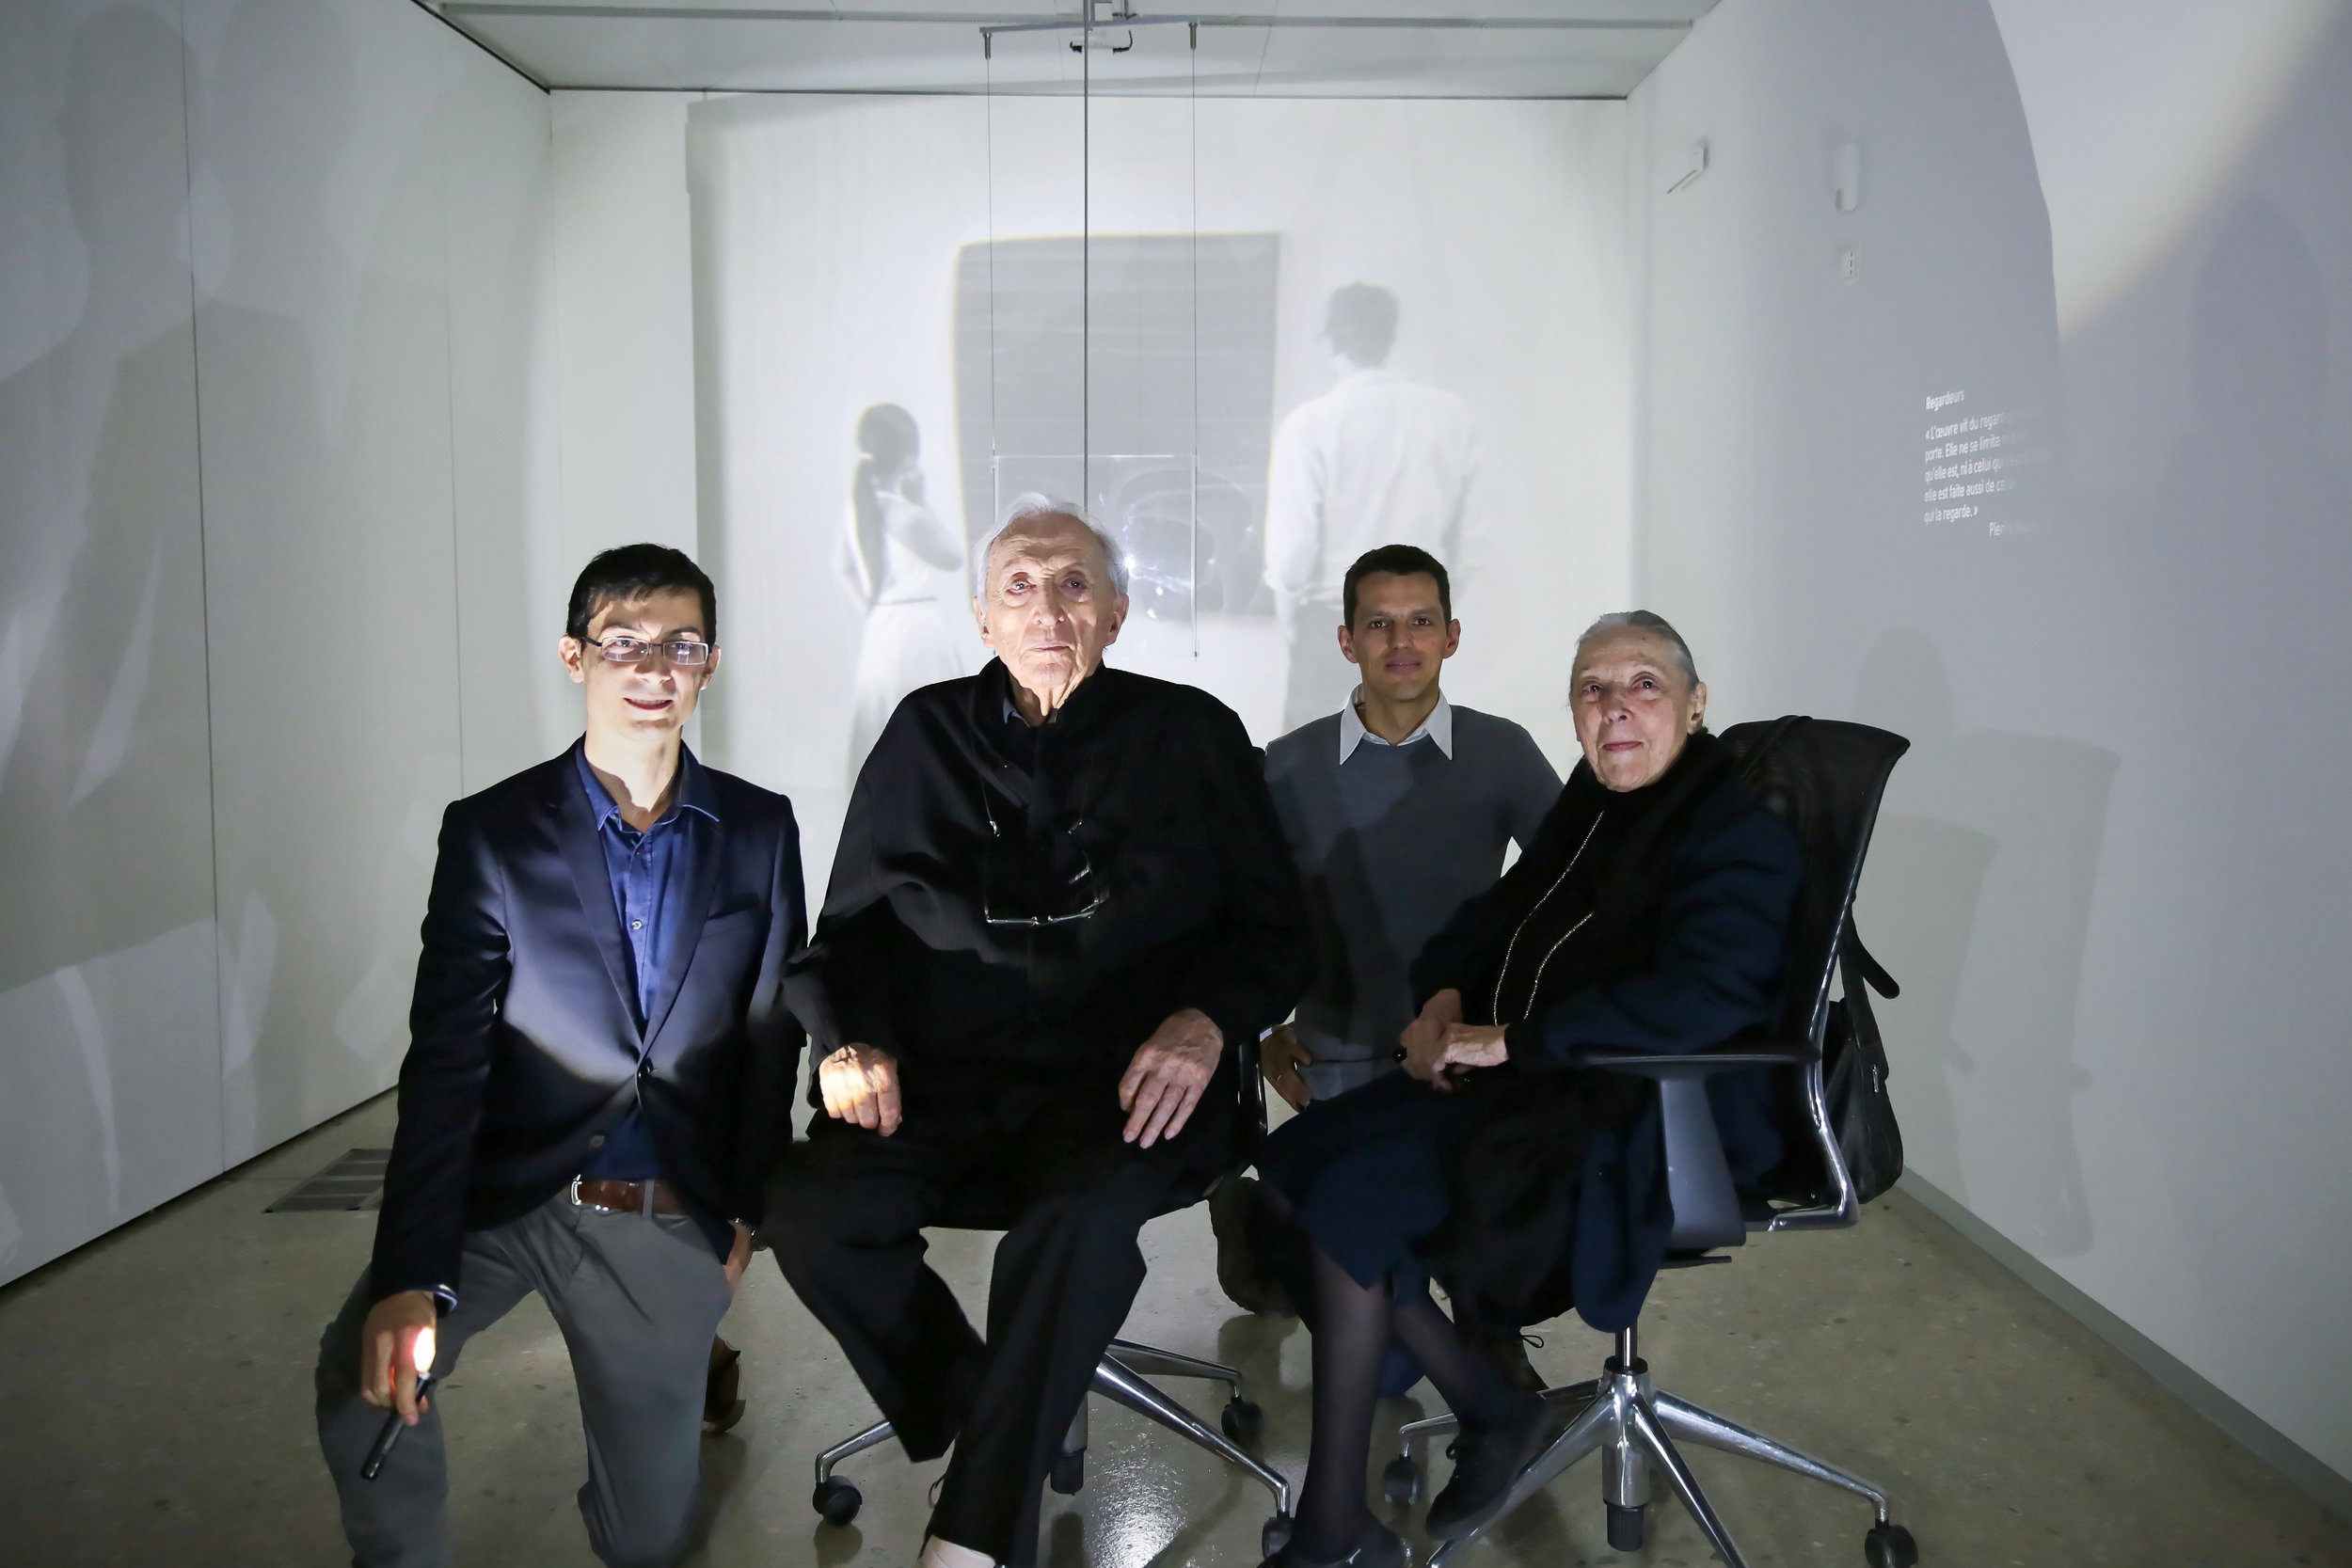 Visite of Pierre and Colette Soulages